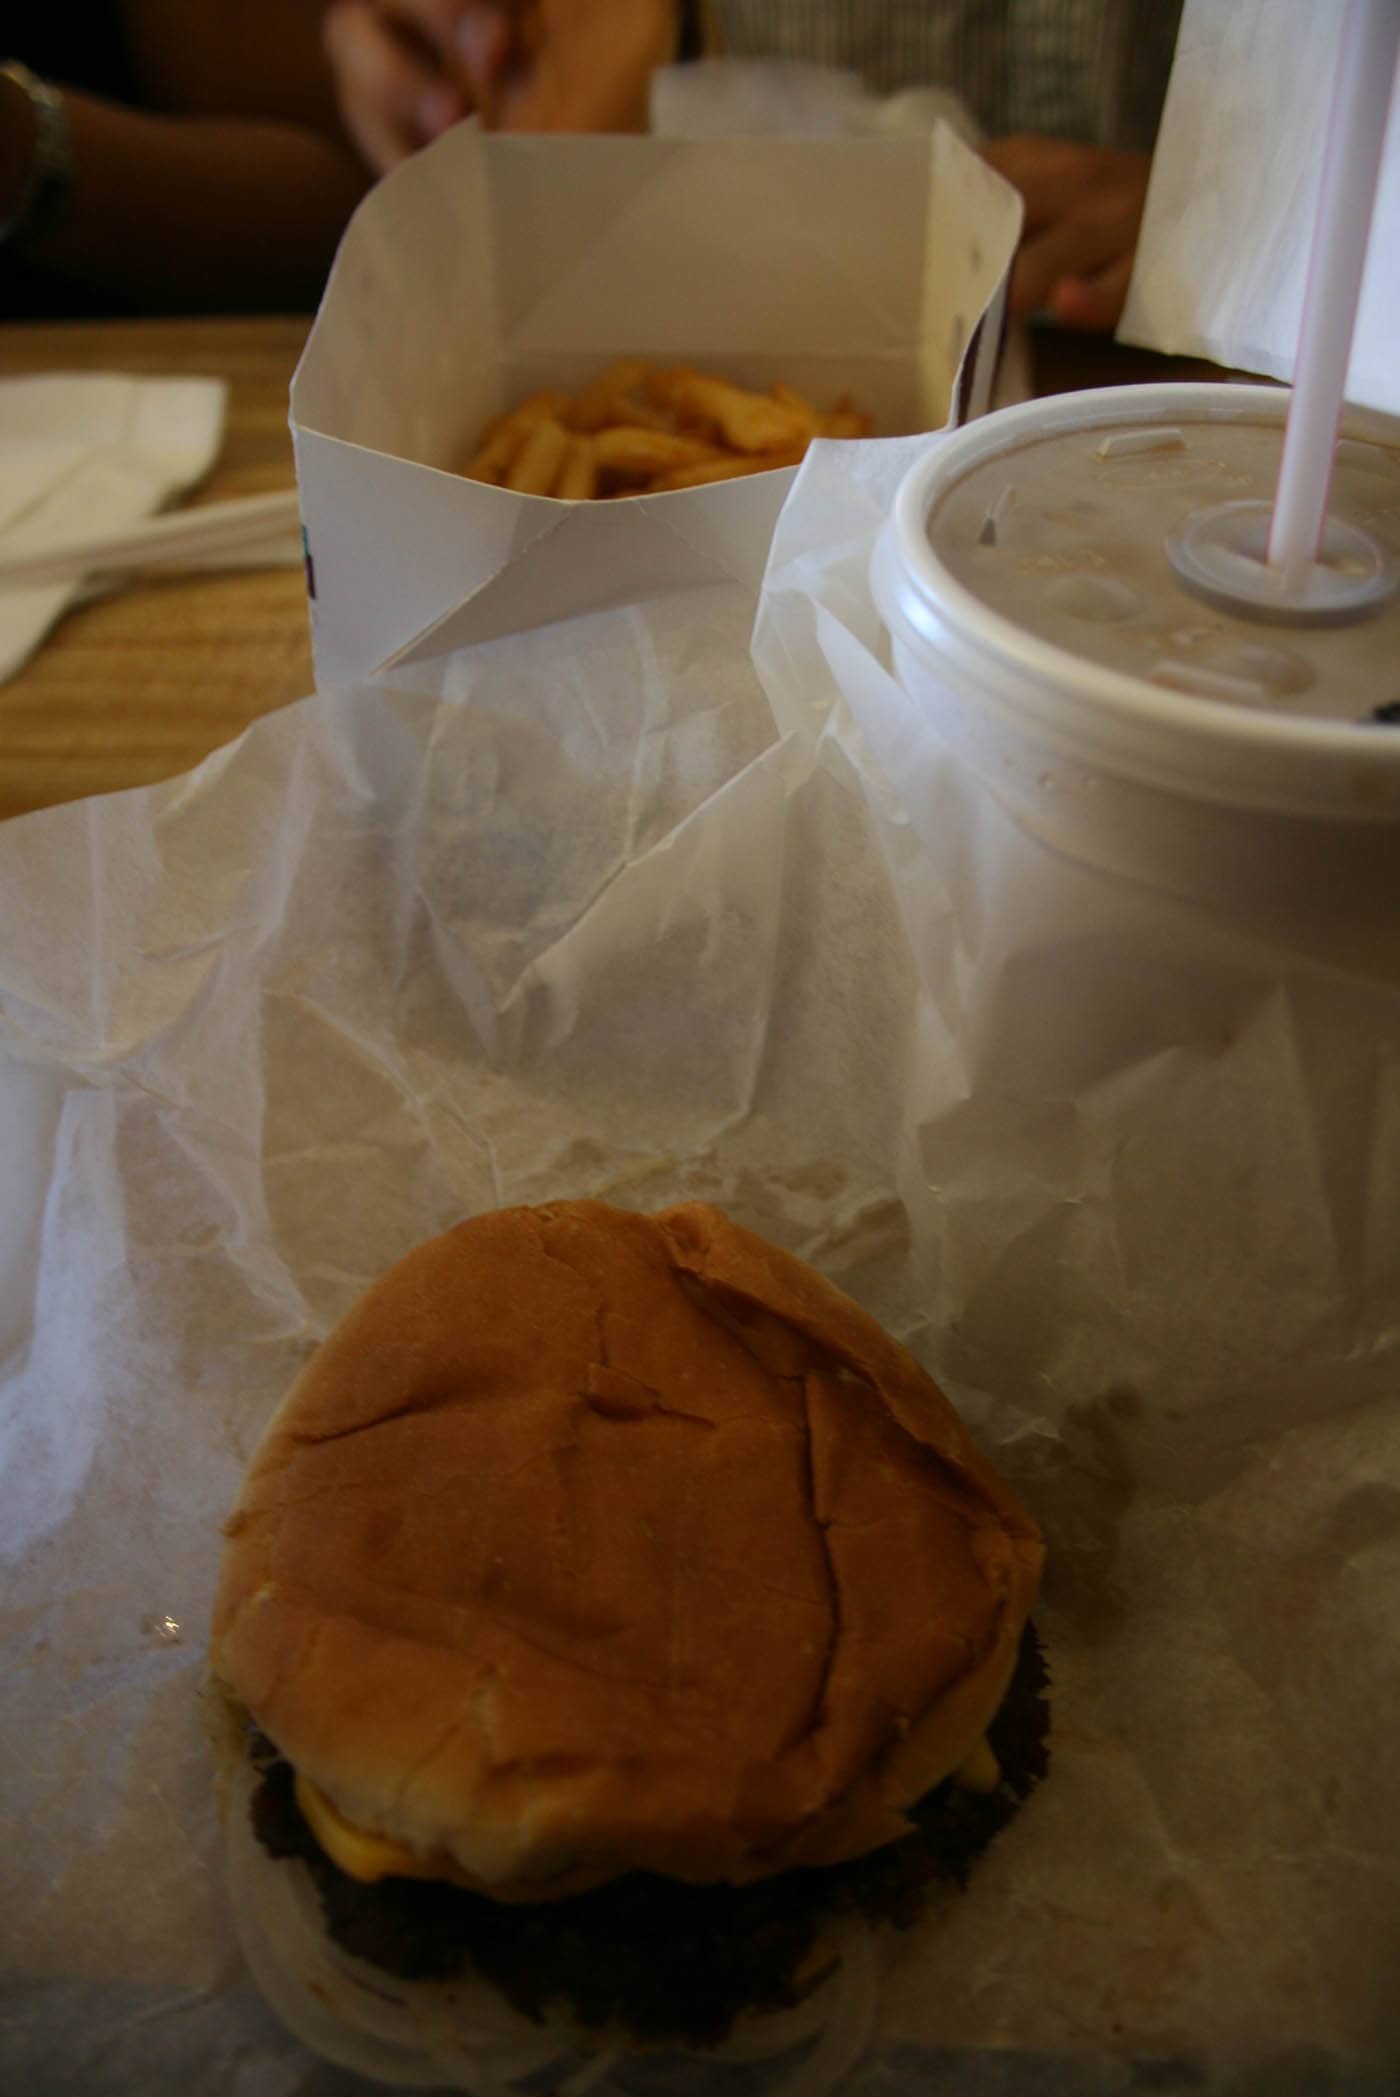 """ILLINOIS ROAD TRIP AND ROADSIDE ATTRACTIONS: THE ORIGINAL """"BURGER KING"""" IN MATTOON"""